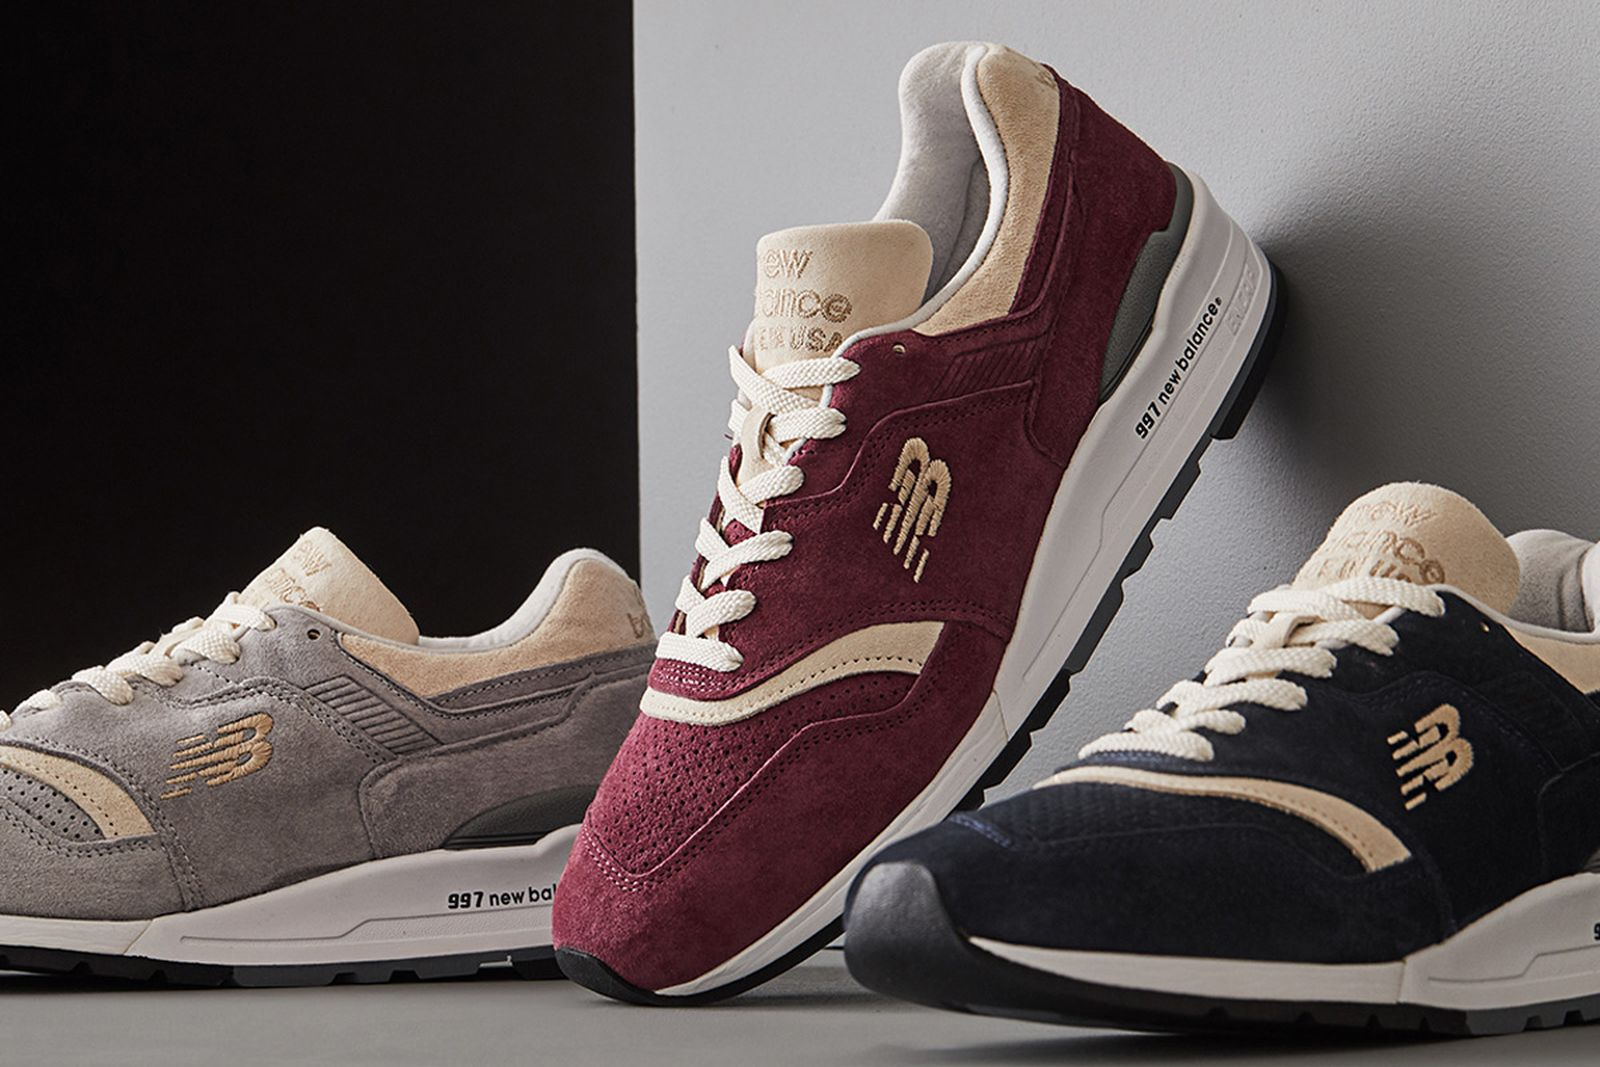 todd-snyder-new-balance-triborough-997-release-date-price-01